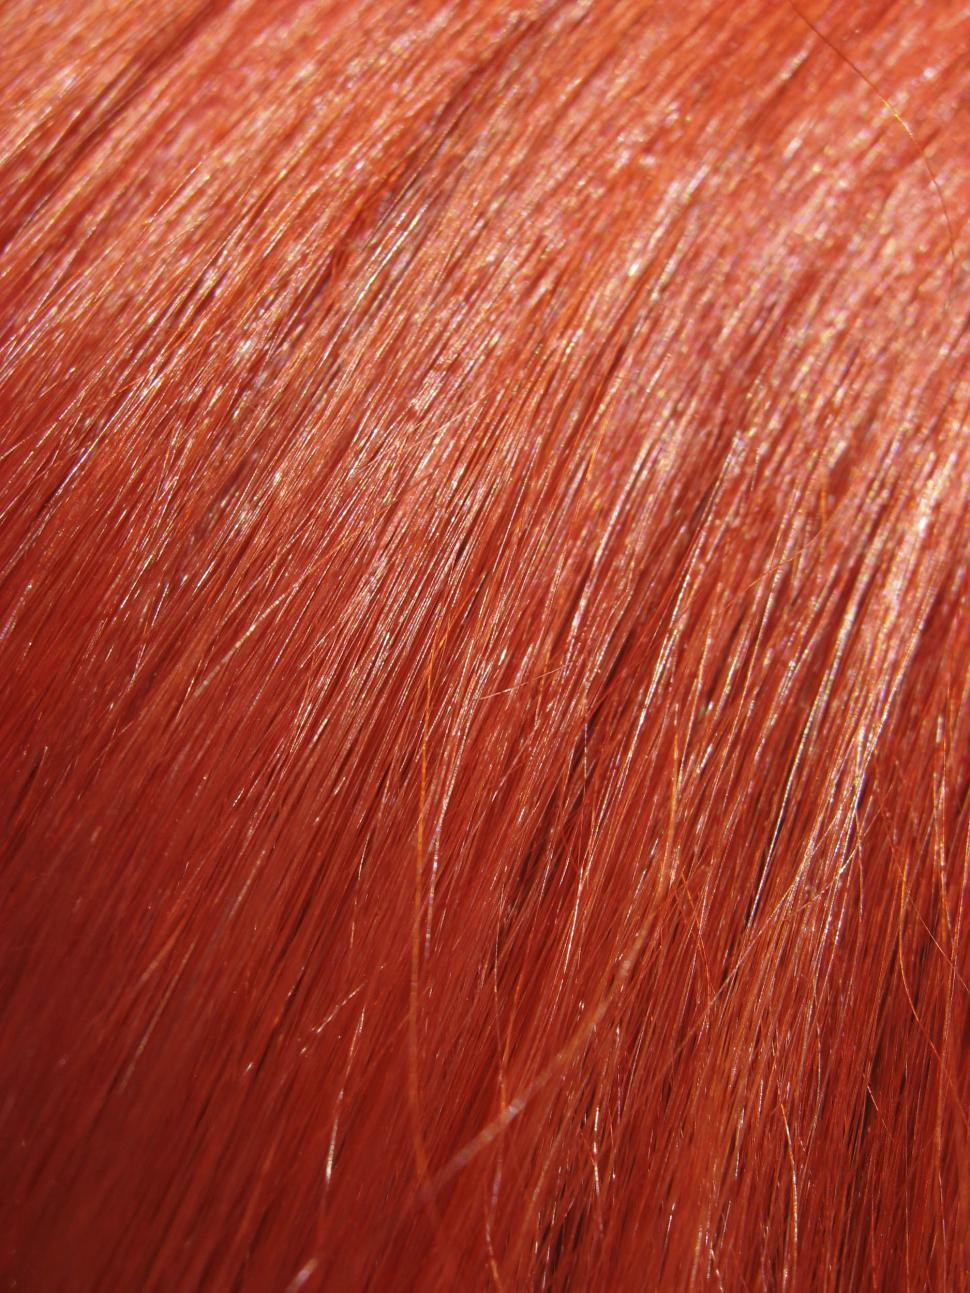 Download Free Stock HD Photo of red hair Online